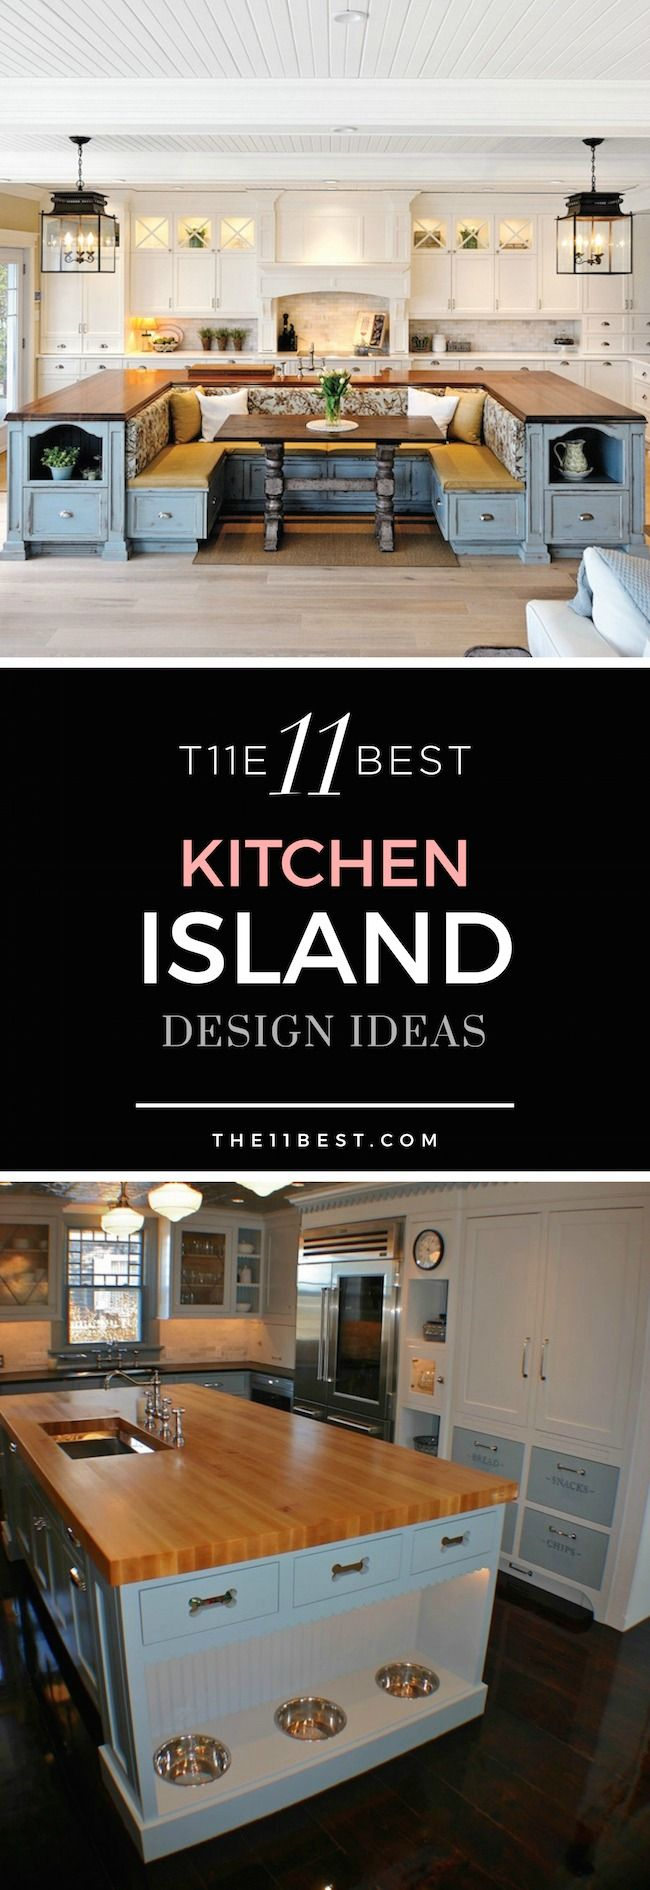 The 11 Best Kitchen Islands | Island design, Kitchens and House Small Warehouse Layout Design X on